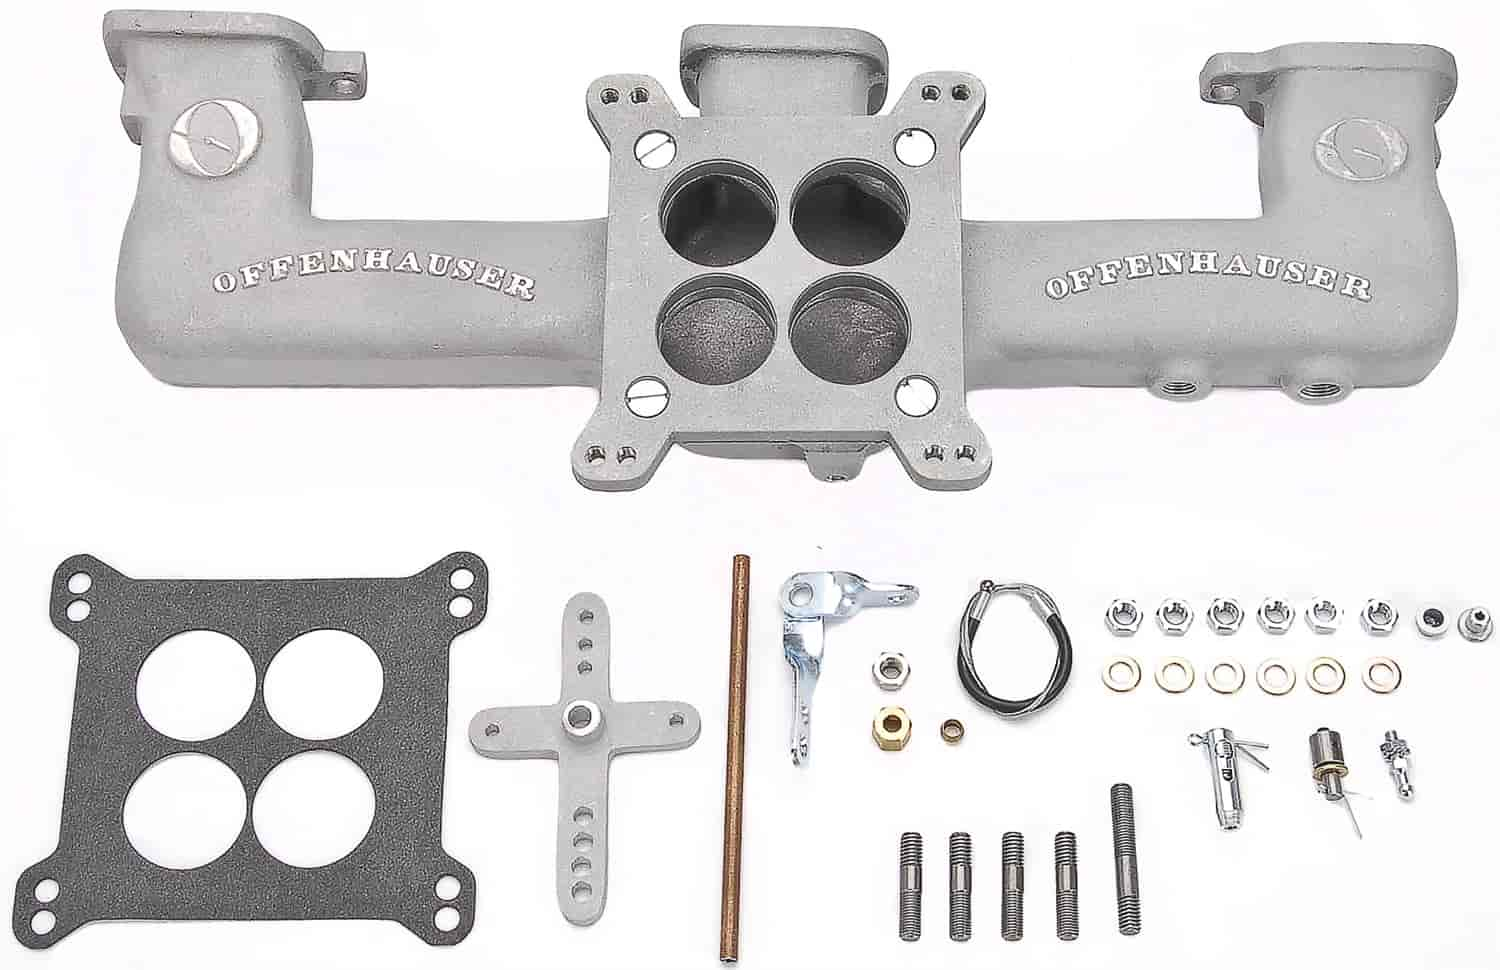 Offenhauser Quad Carb Intake Manifold Kit 1962-Up Chevy 194/230/250/292